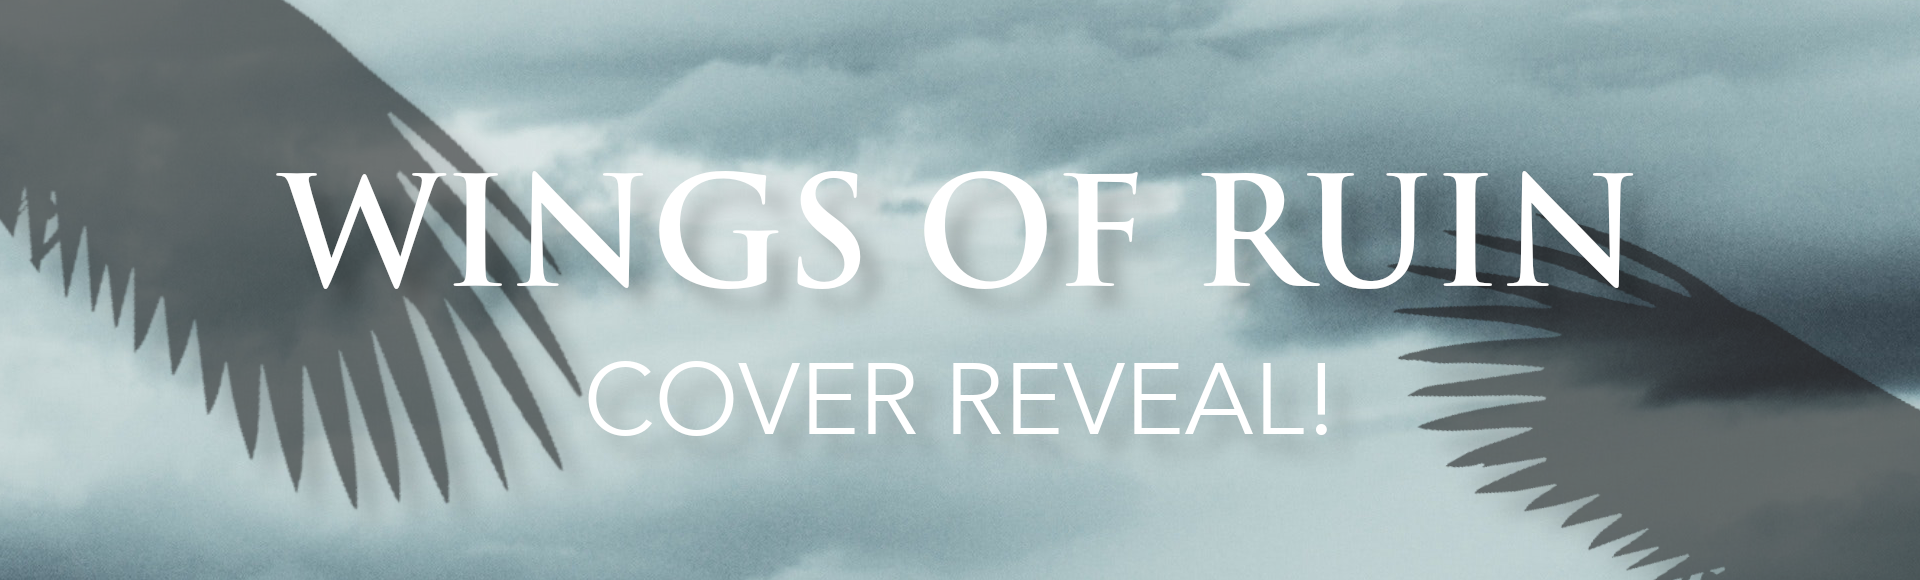 wings of ruin cover reveal banner pooled ink